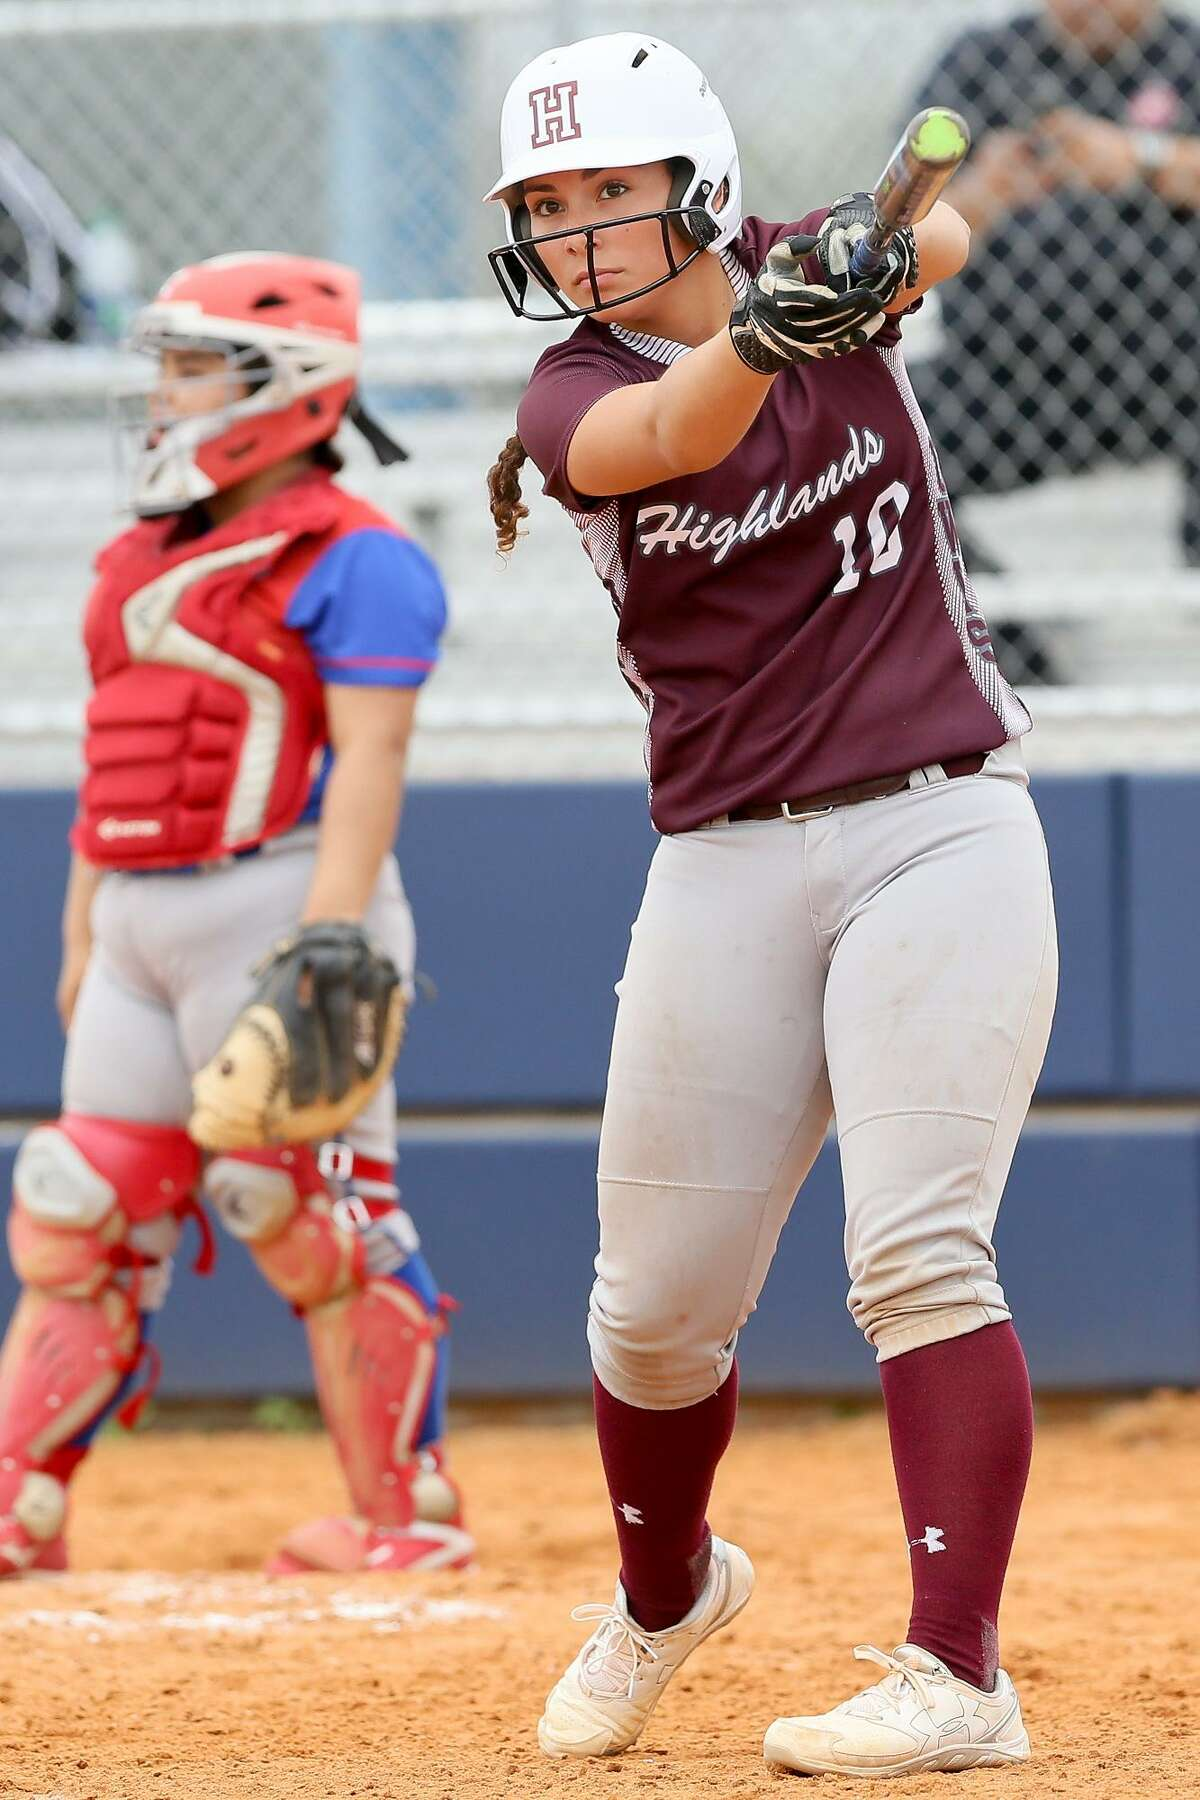 Highlands' Alyssa Flores warms up as she comes to the plate during the third inning of their District 28-5A softball game with Memorial at the SAISD Softball Complex on Thursday, March 16, 2017. Highlands beat Memorial 15-0 in three innings. MARVIN PFEIFFER/ mpfeiffer@express-news.net